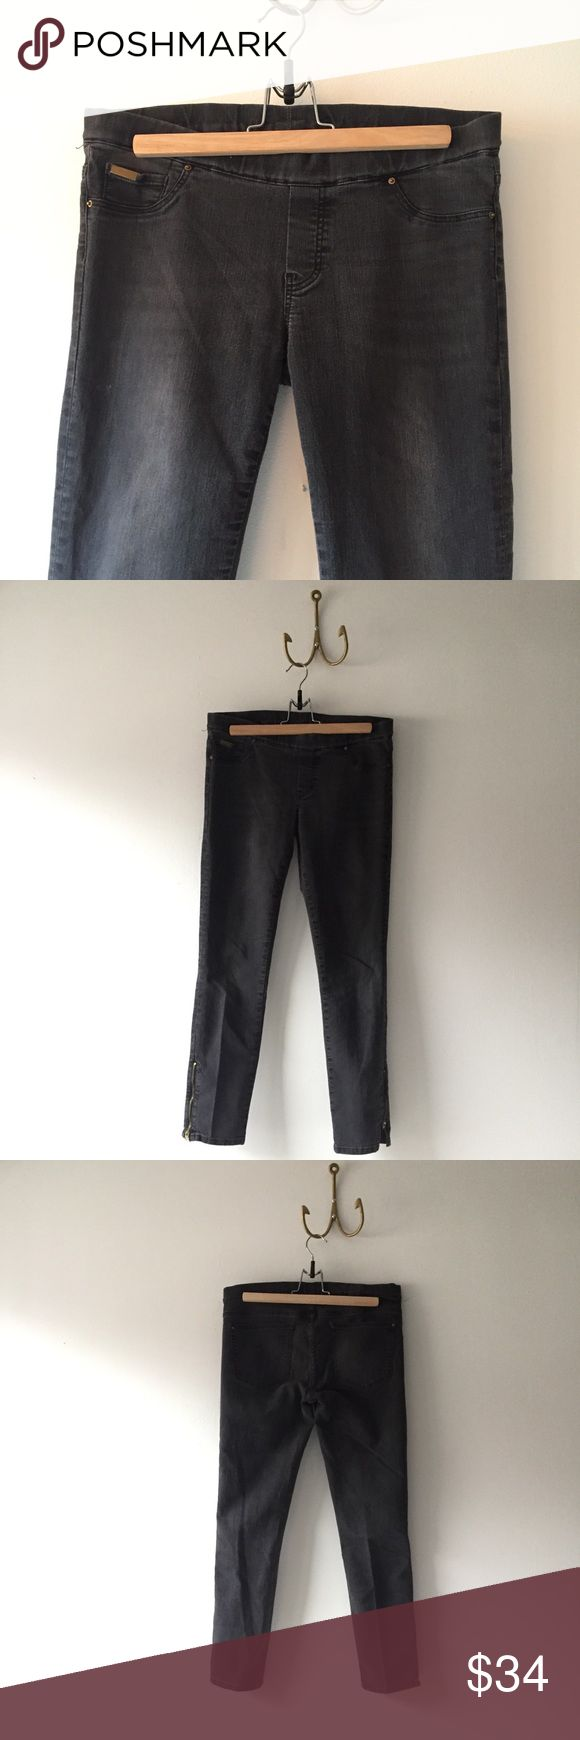 "Zara Faded Black Zipper Ankle Stretch Jean 27"" inseam 31"" waist Zara Jeans Ankle & Cropped"